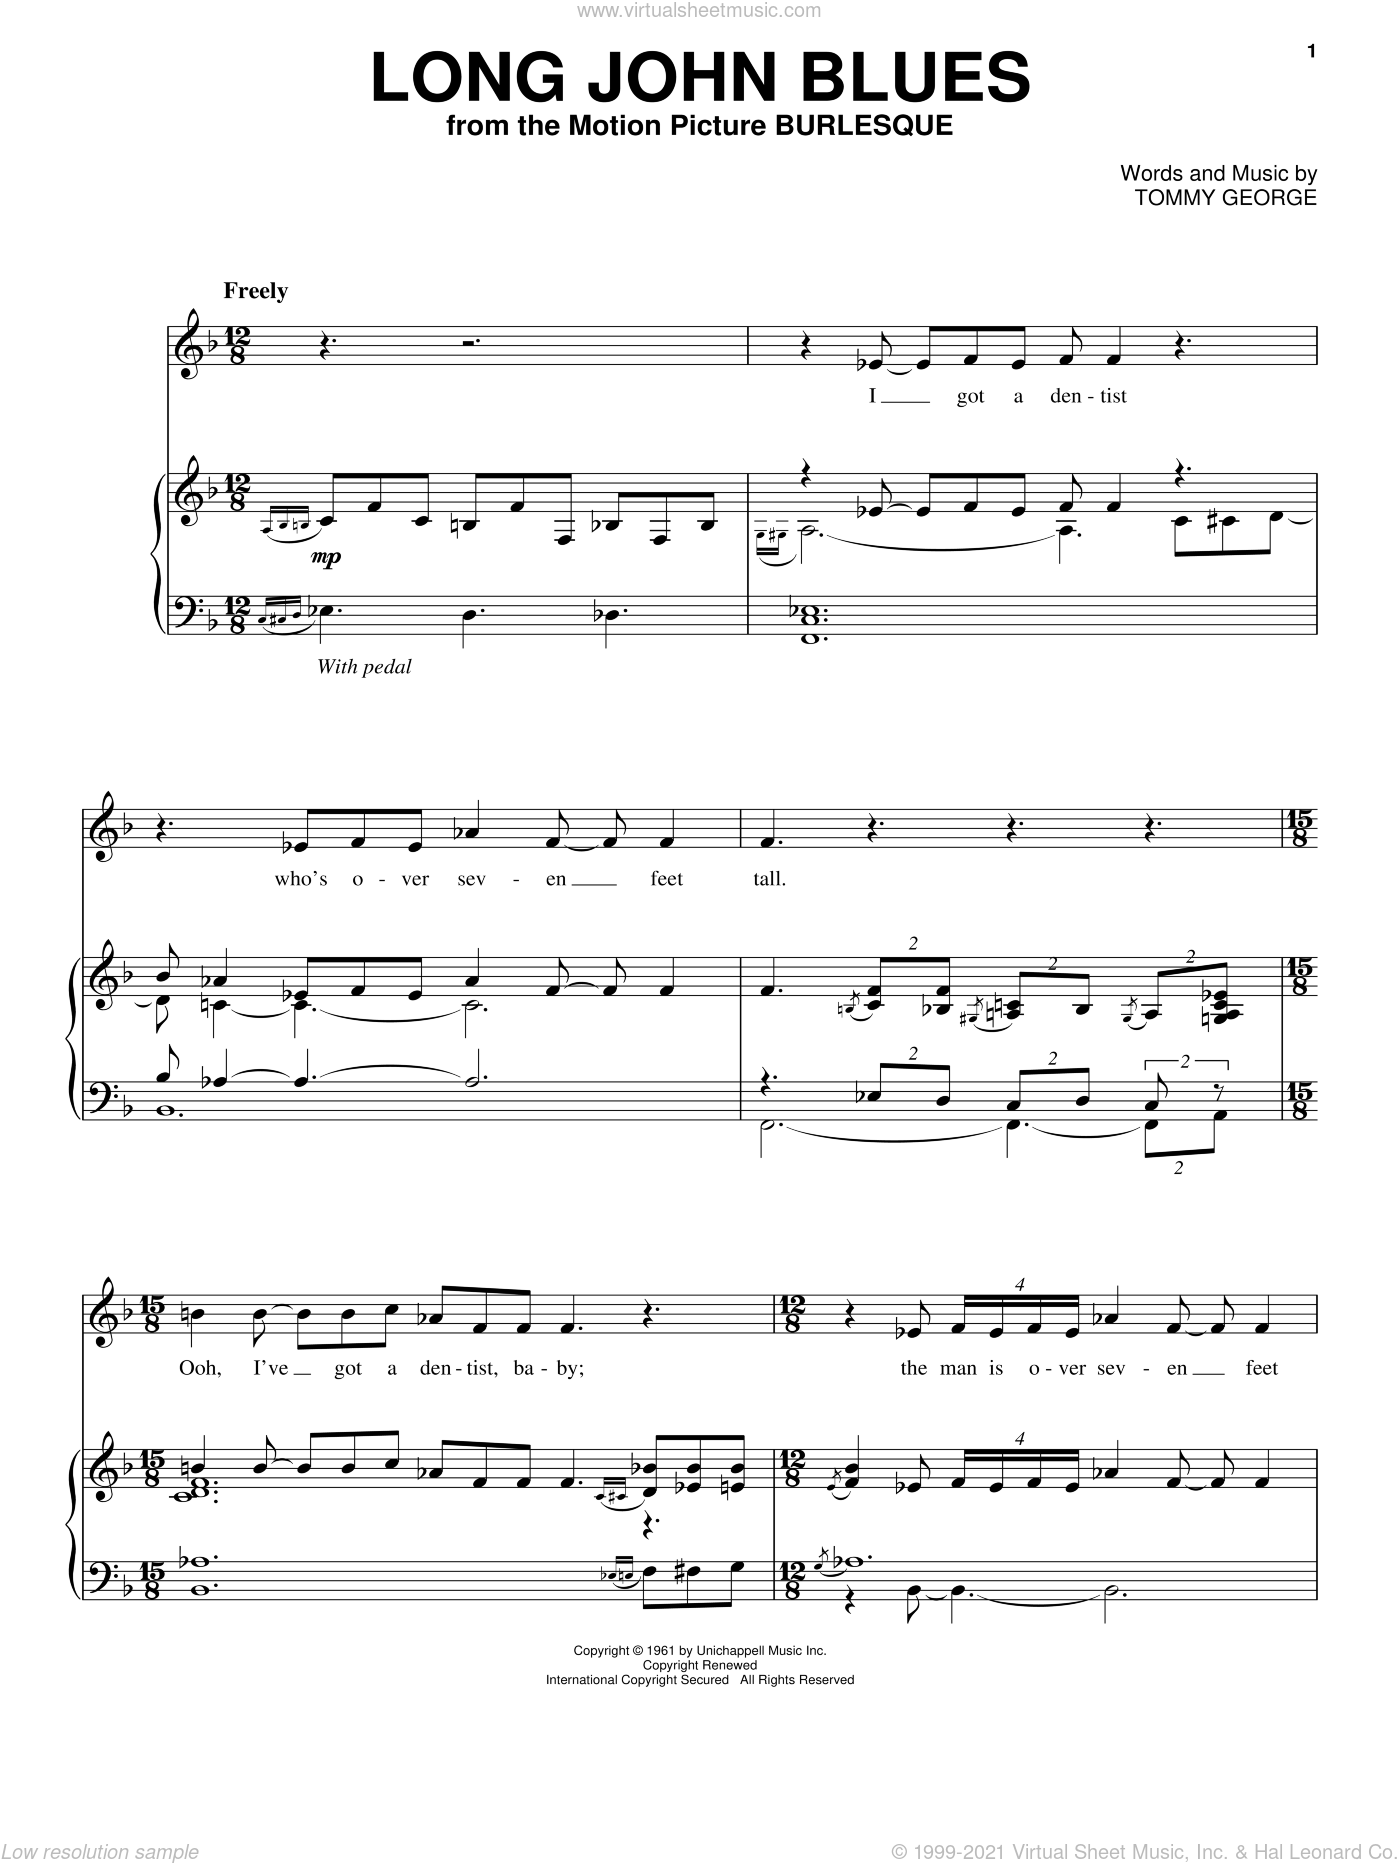 Long John Blues sheet music for voice, piano or guitar by Tommy George. Score Image Preview.